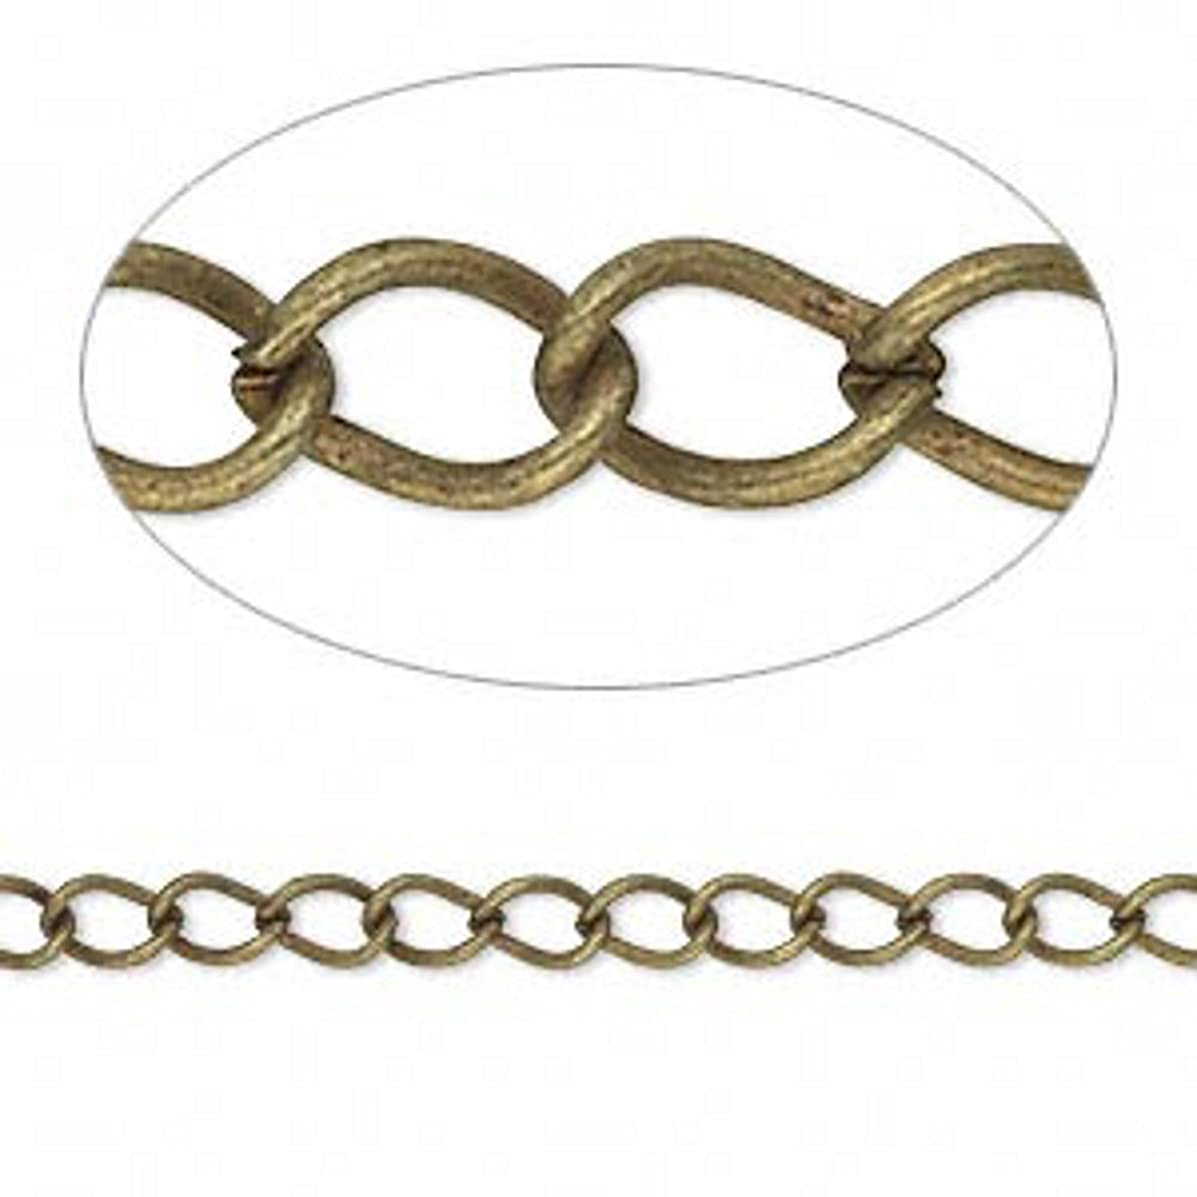 Antiqued Brass Plated Steel Twist Cable 5x3mm Link Jewelry Craft Chain Sold in bulk lot of 10 Meters (32.8 feet)